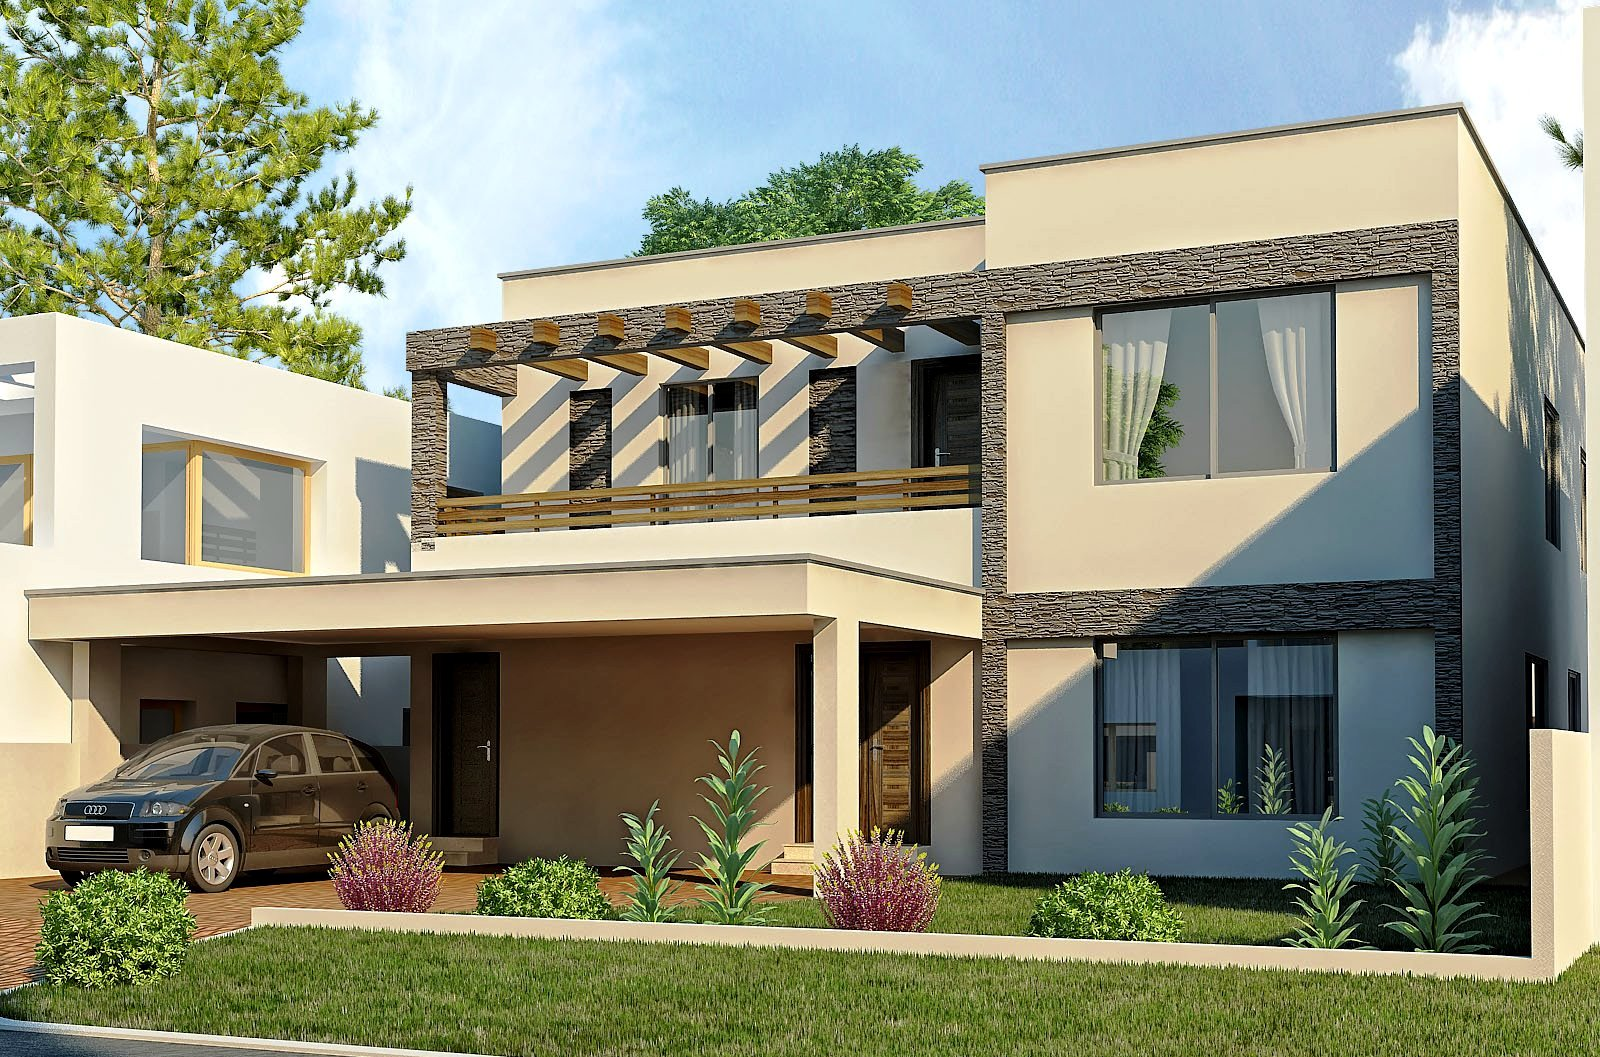 New home designs latest modern homes exterior designs views for Latest house designs 2015